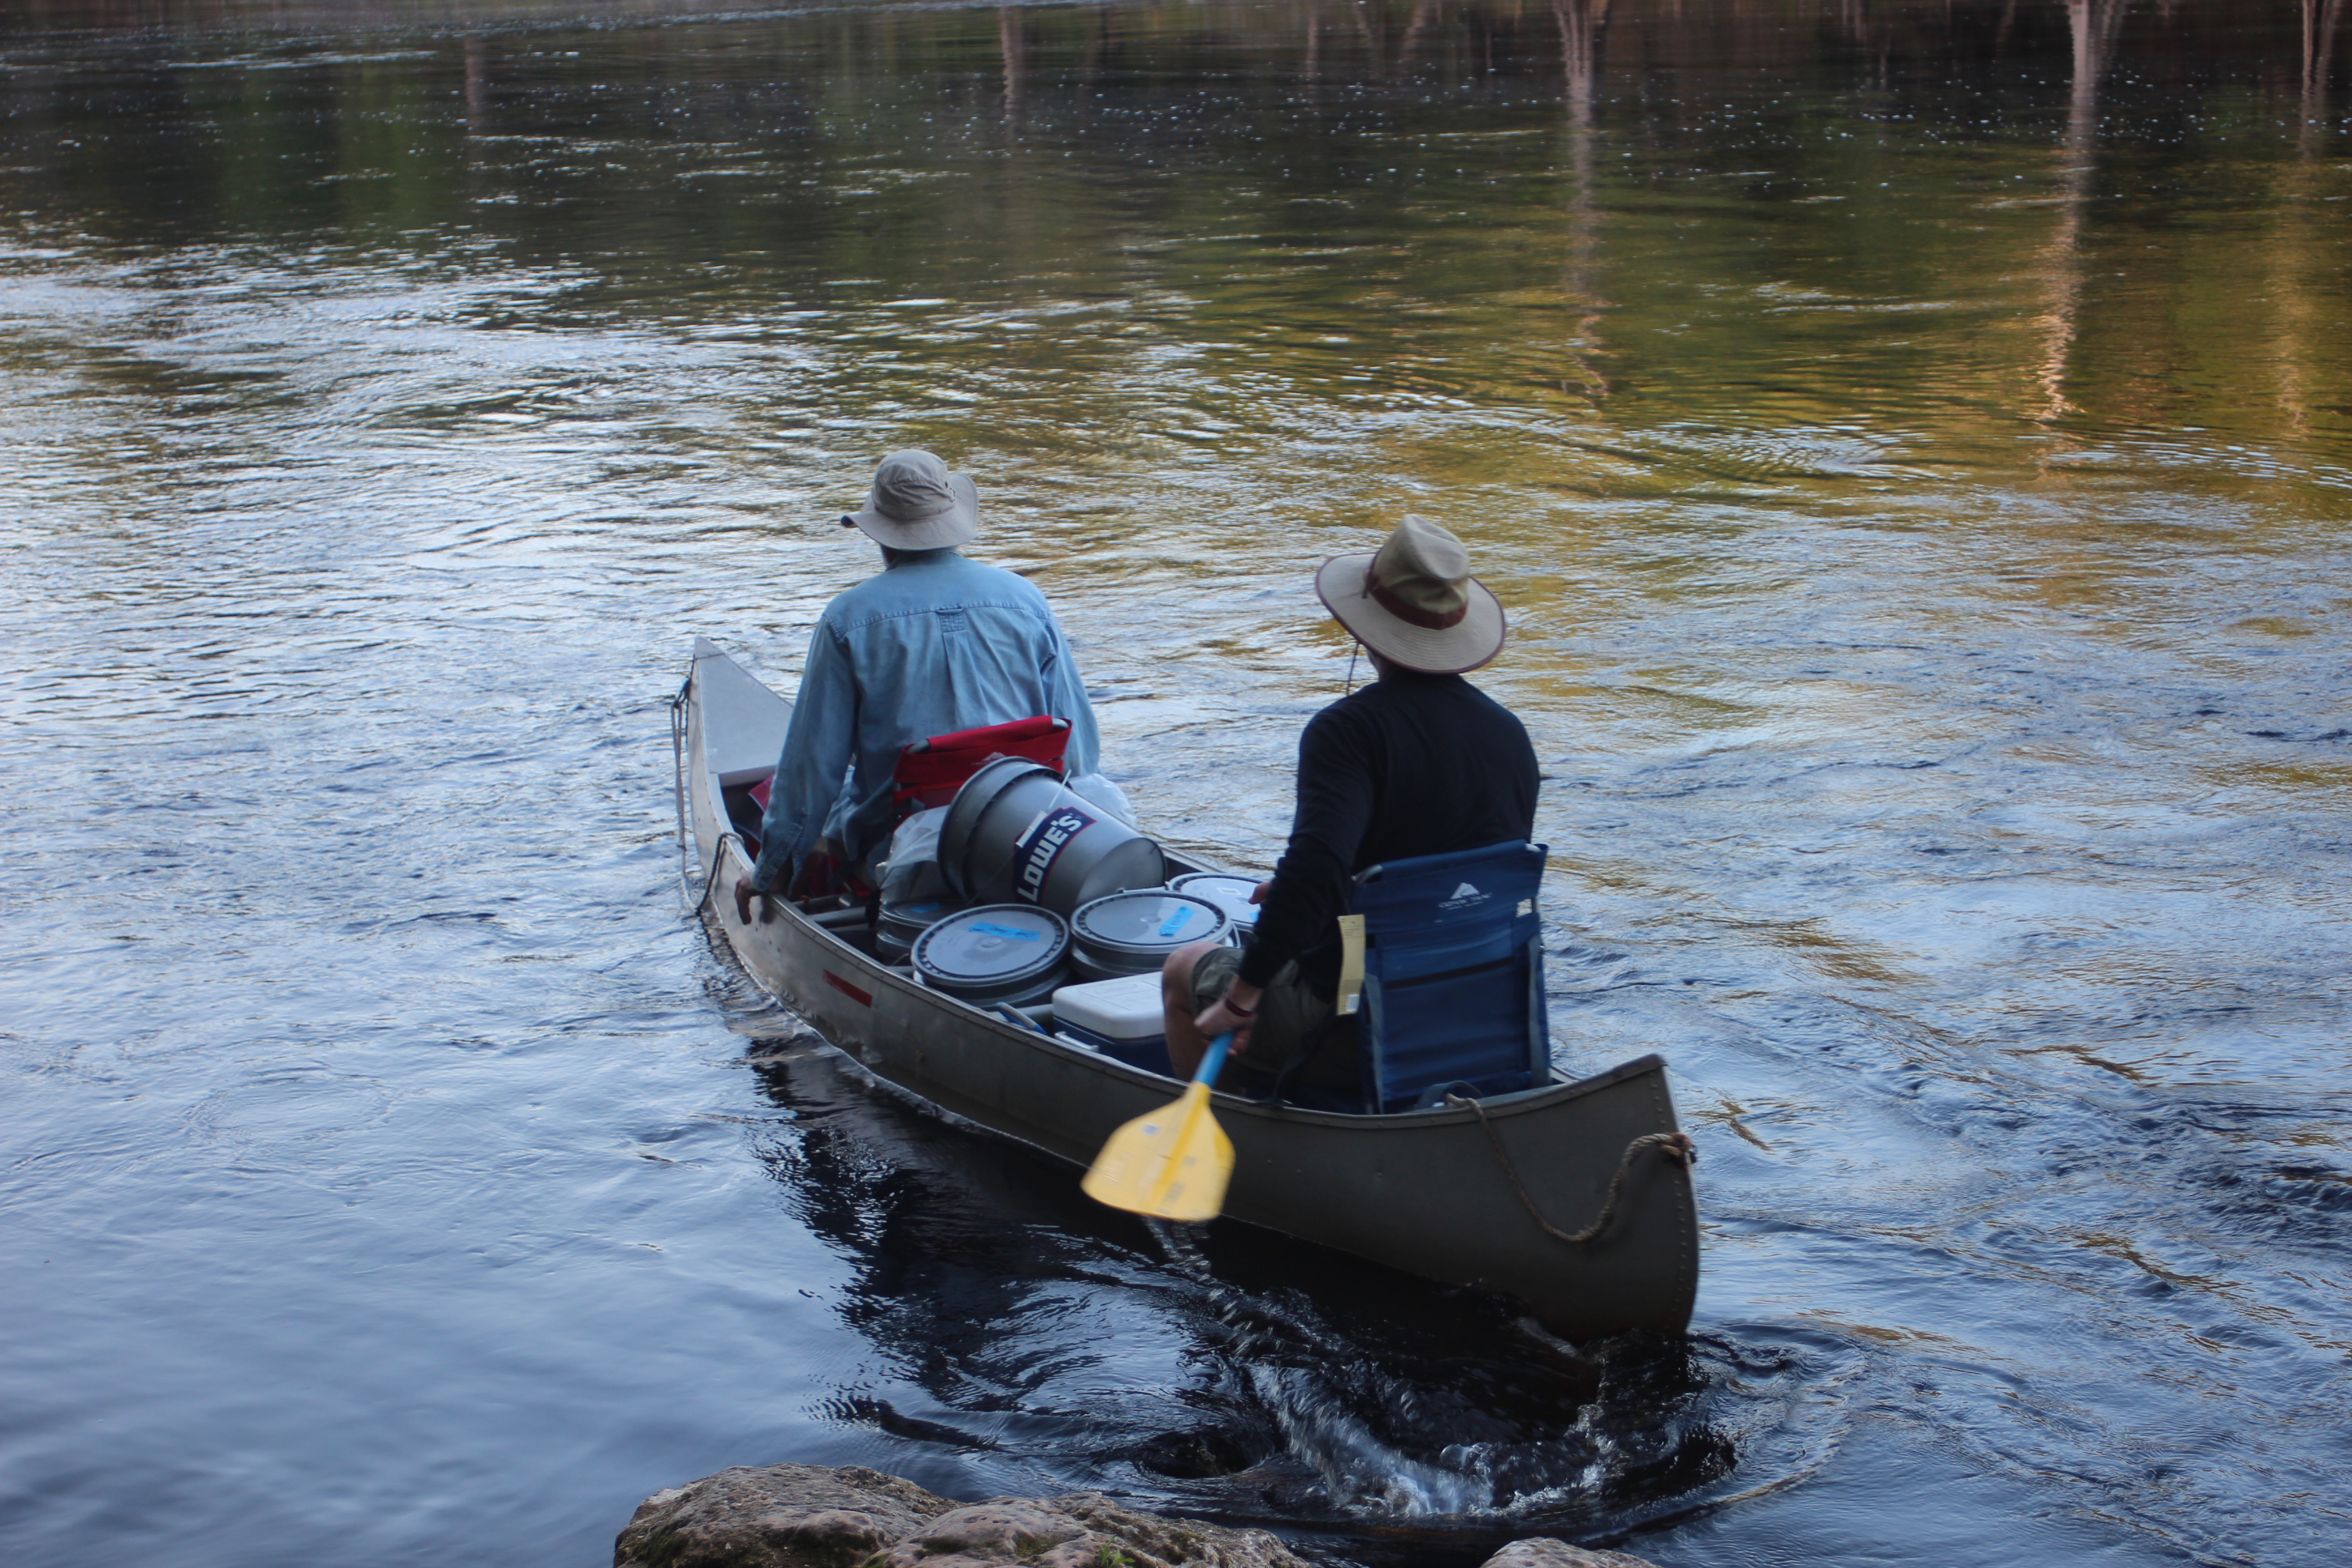 suwannee singles Svr is a 21+, clothing optional resort located on the banks of the historic suwannee river  couple or single = $6500, senior citizen,.